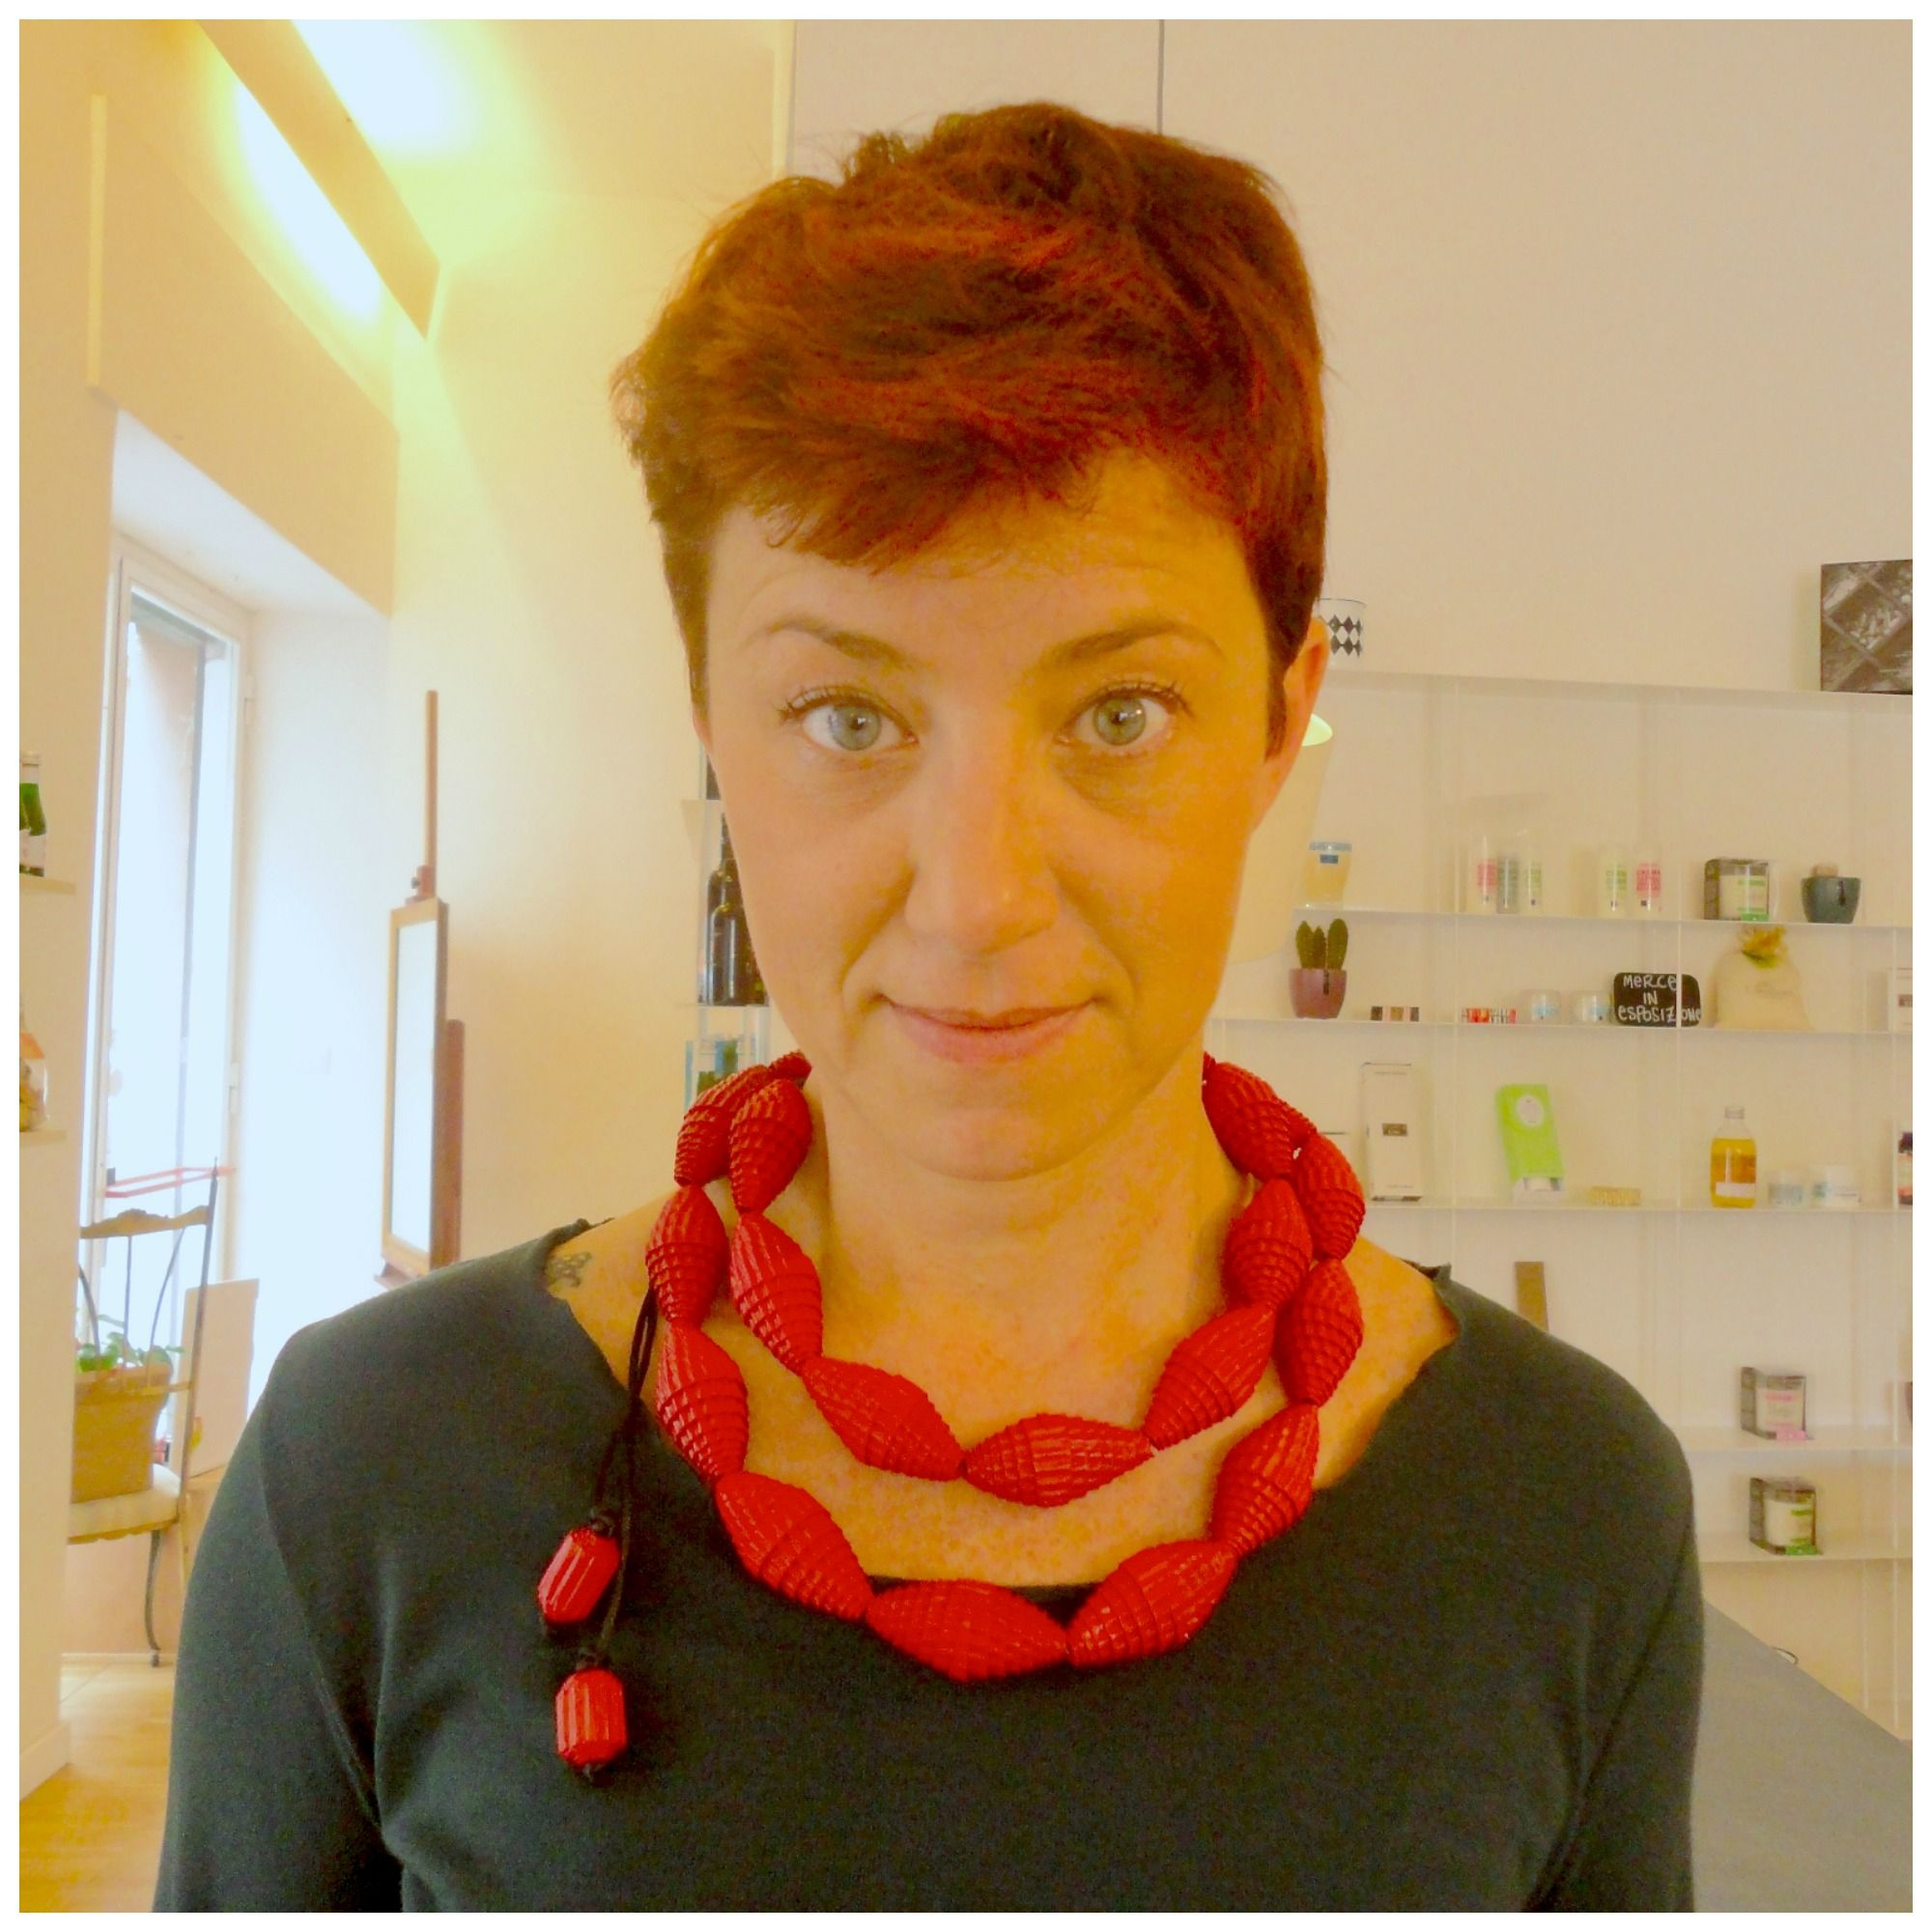 Longred#necklace with chunky #beadsofpaper on the neck of its new owner... WOW!!! Emoticon smile http://etsy.me/1yLF4Mg